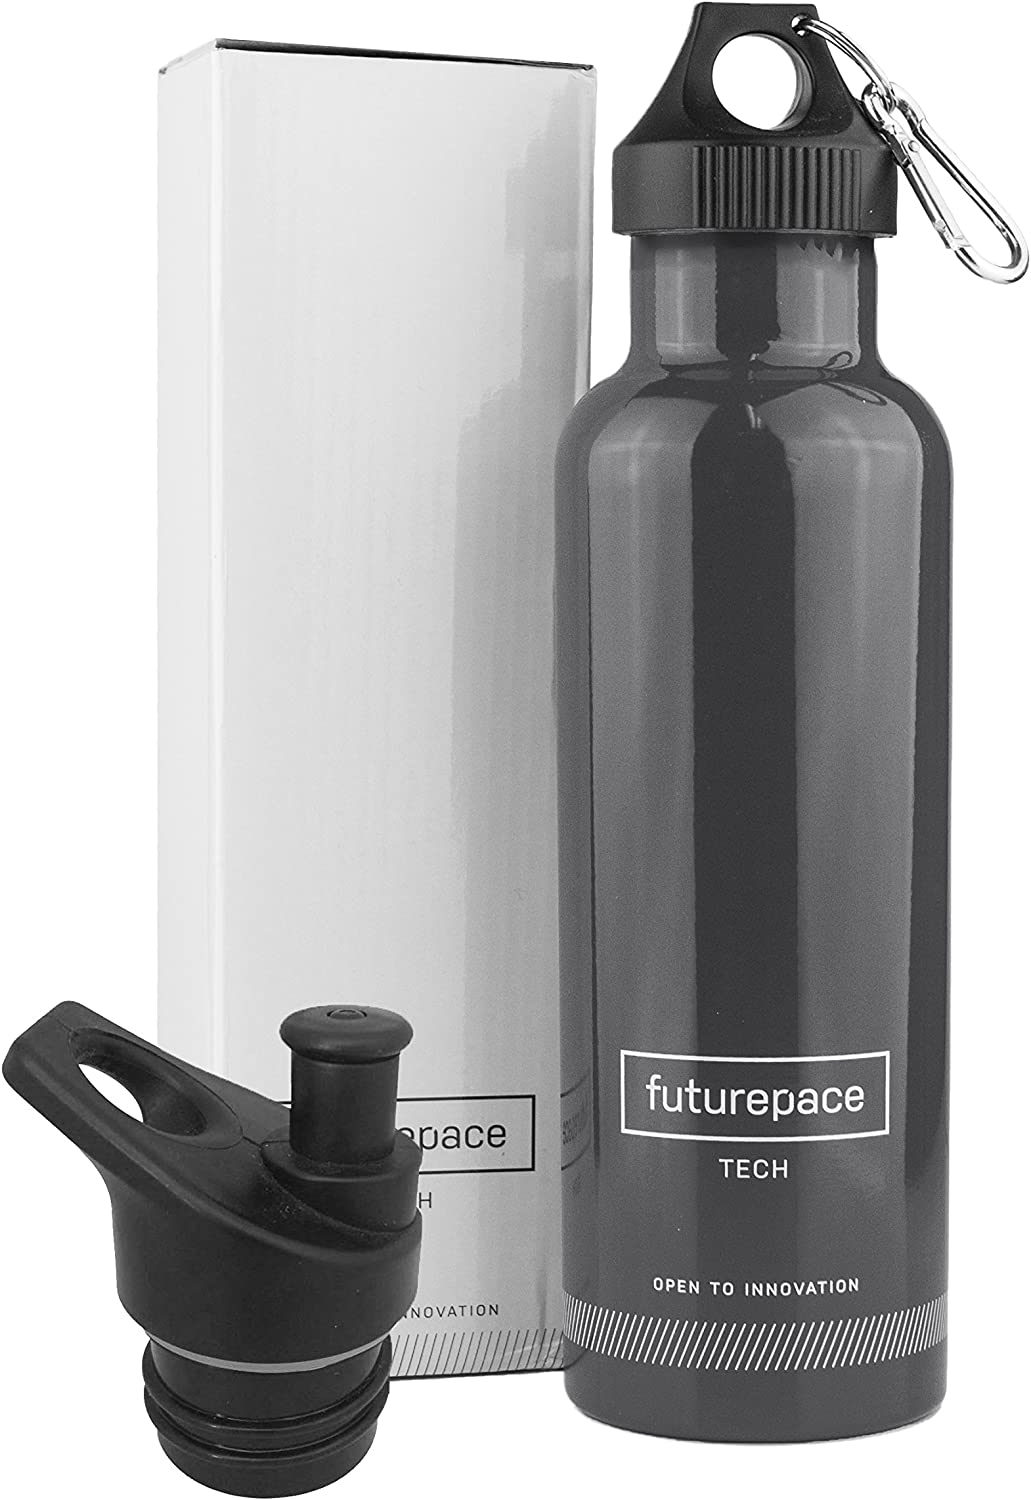 Futurepace Tech Best Stainless Steel Insulated Sports Water Bottle - Large Silver - 25oz- BPA Free Hydrate with Double Wall! for Office, Gym, Running, Cycling, Hiking